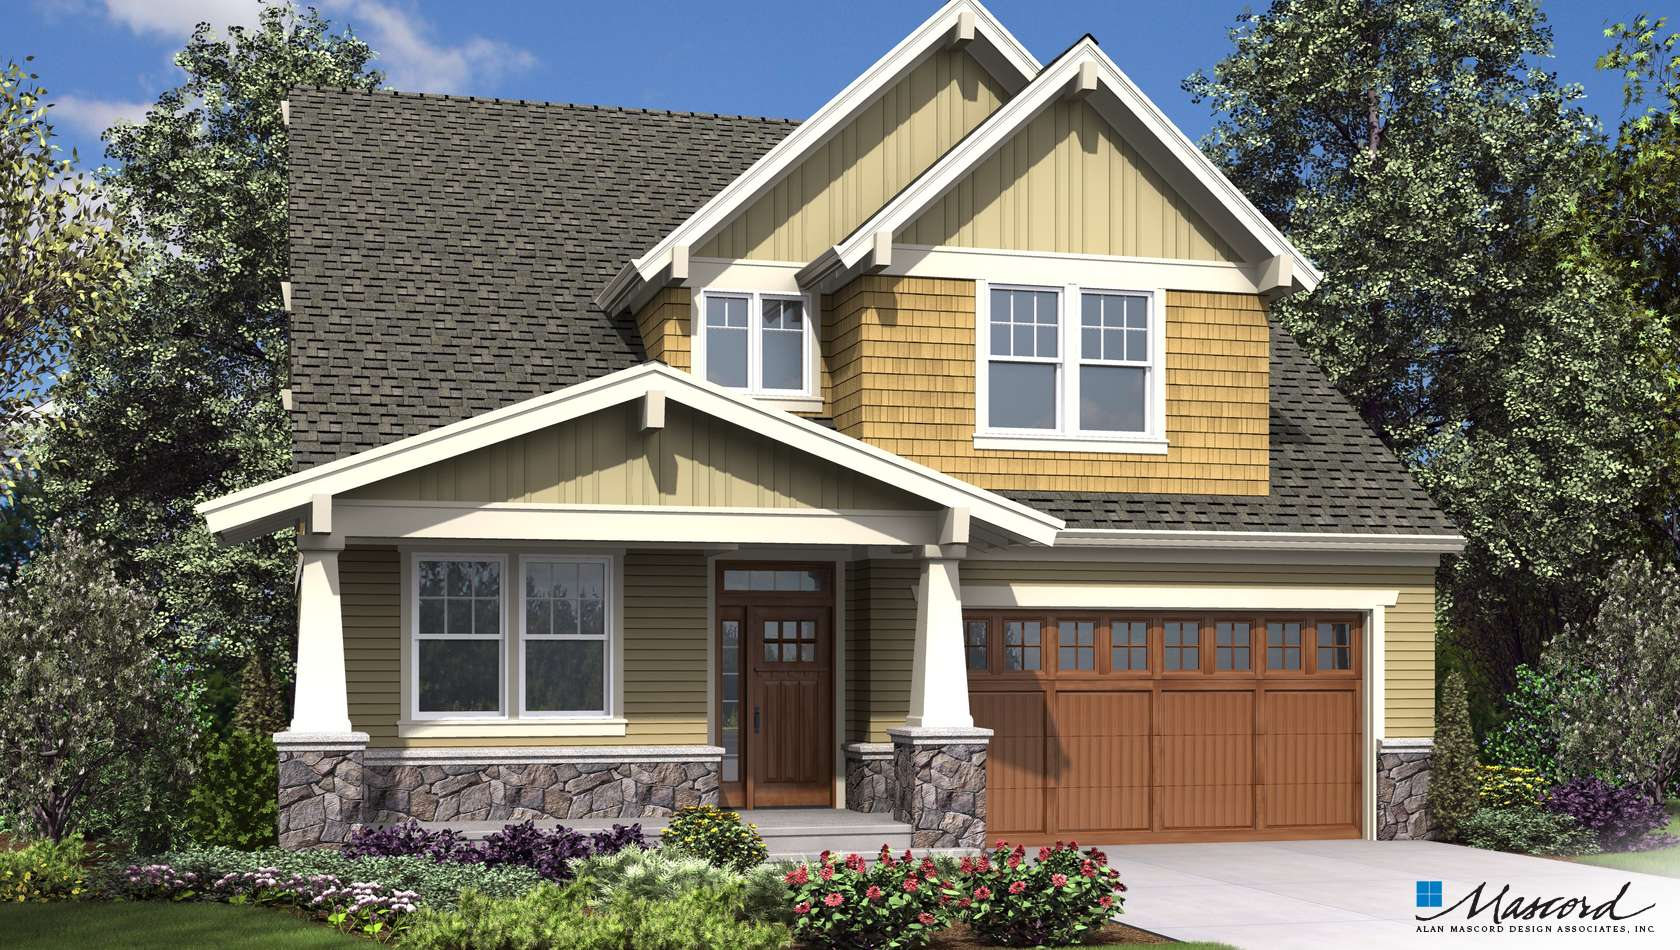 Main image for house plan 23114: The Mellowhaven